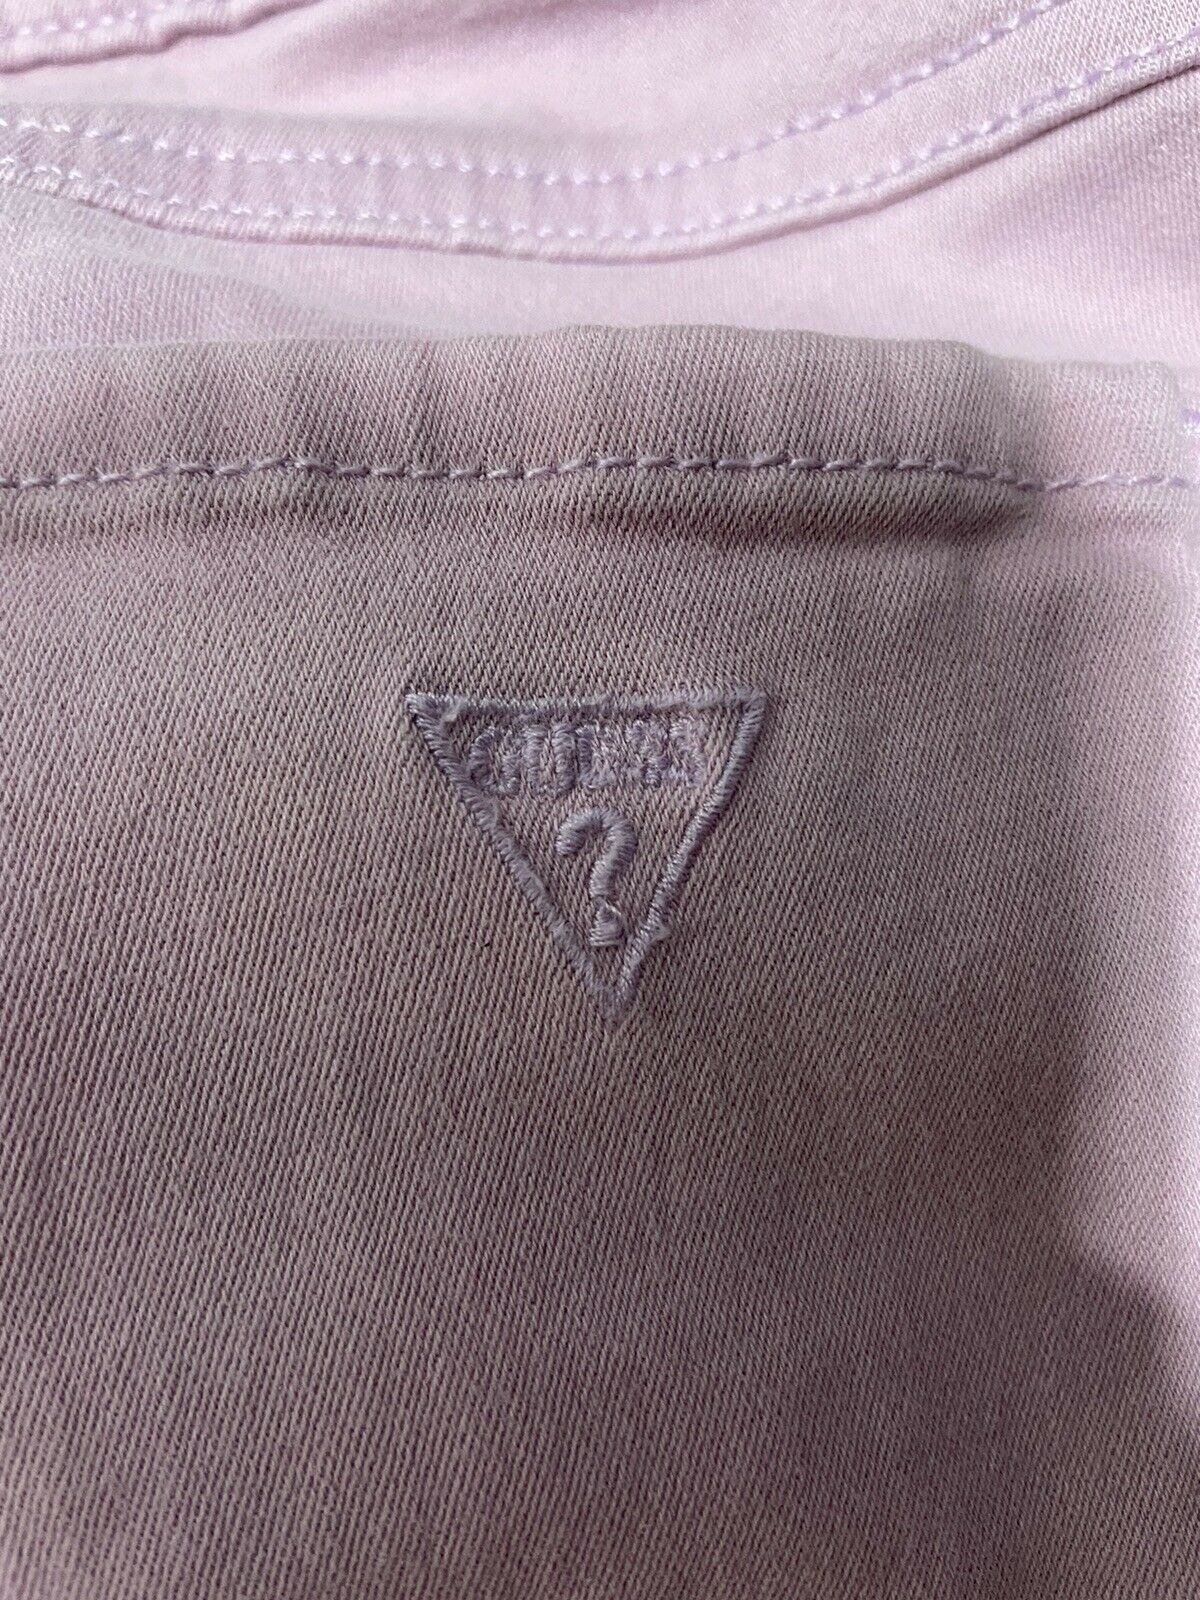 Womens Guess Britney Skinny Jeans Pink Size 27  - image 7